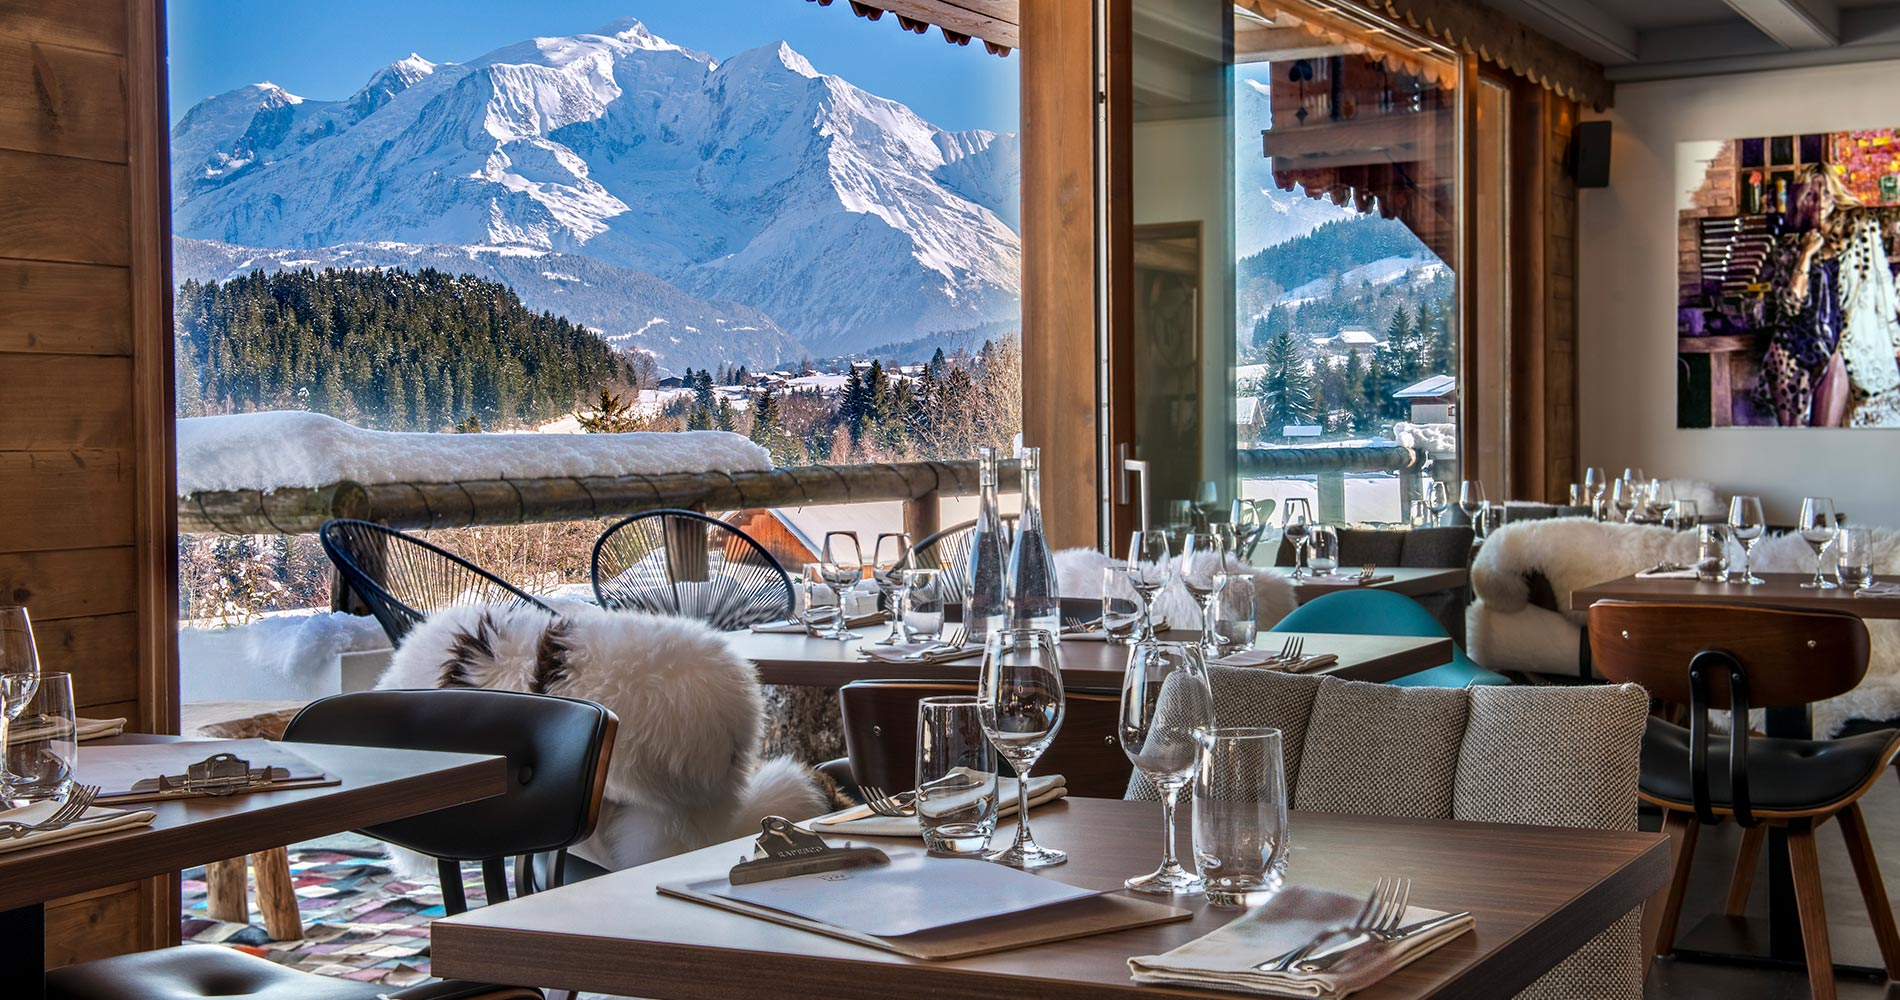 luxury chalet Les Roches Hotel & Spa 4* Cordon Savoie France restaurant with montagne view